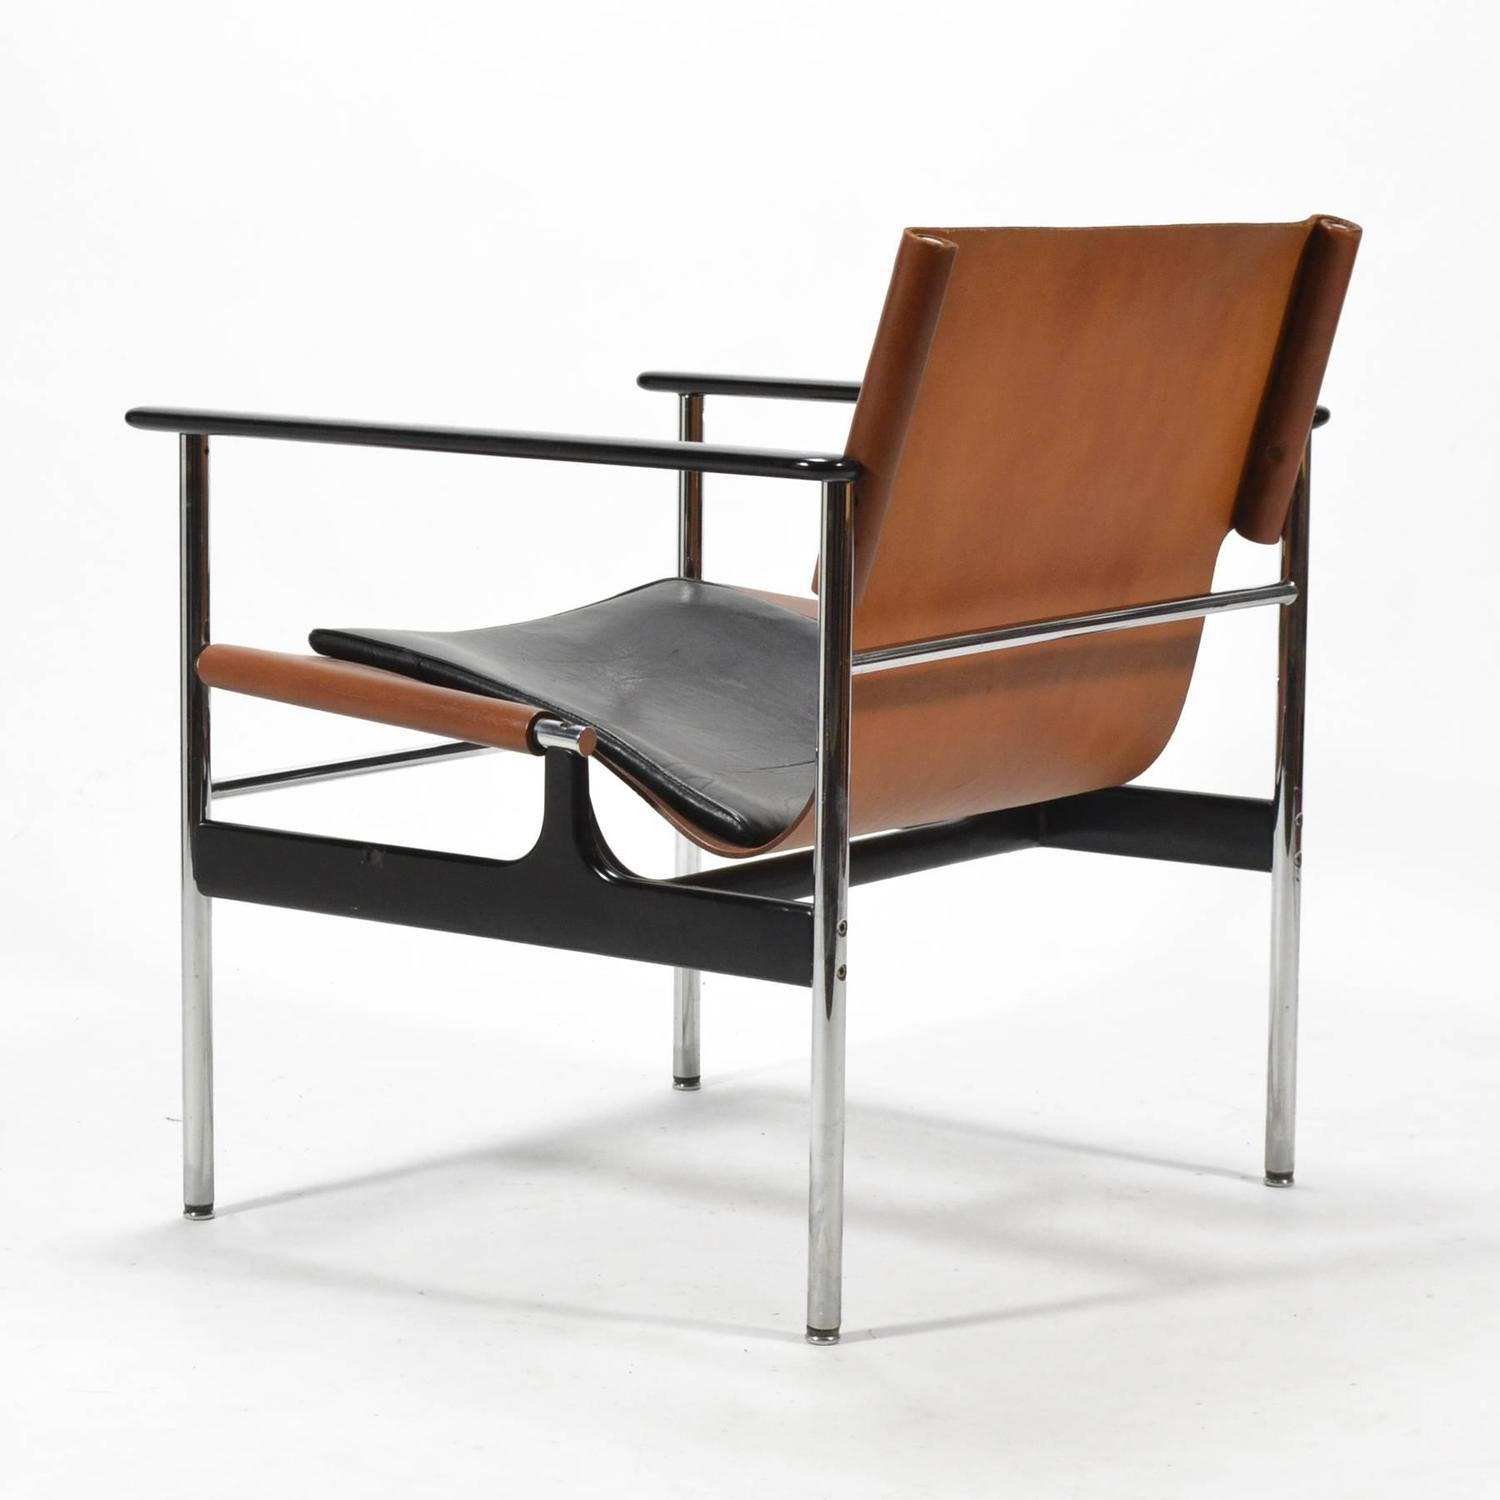 Knoll Pollock Chair Charles Pollock Model 657 Sling Lounge Chair By Knoll For